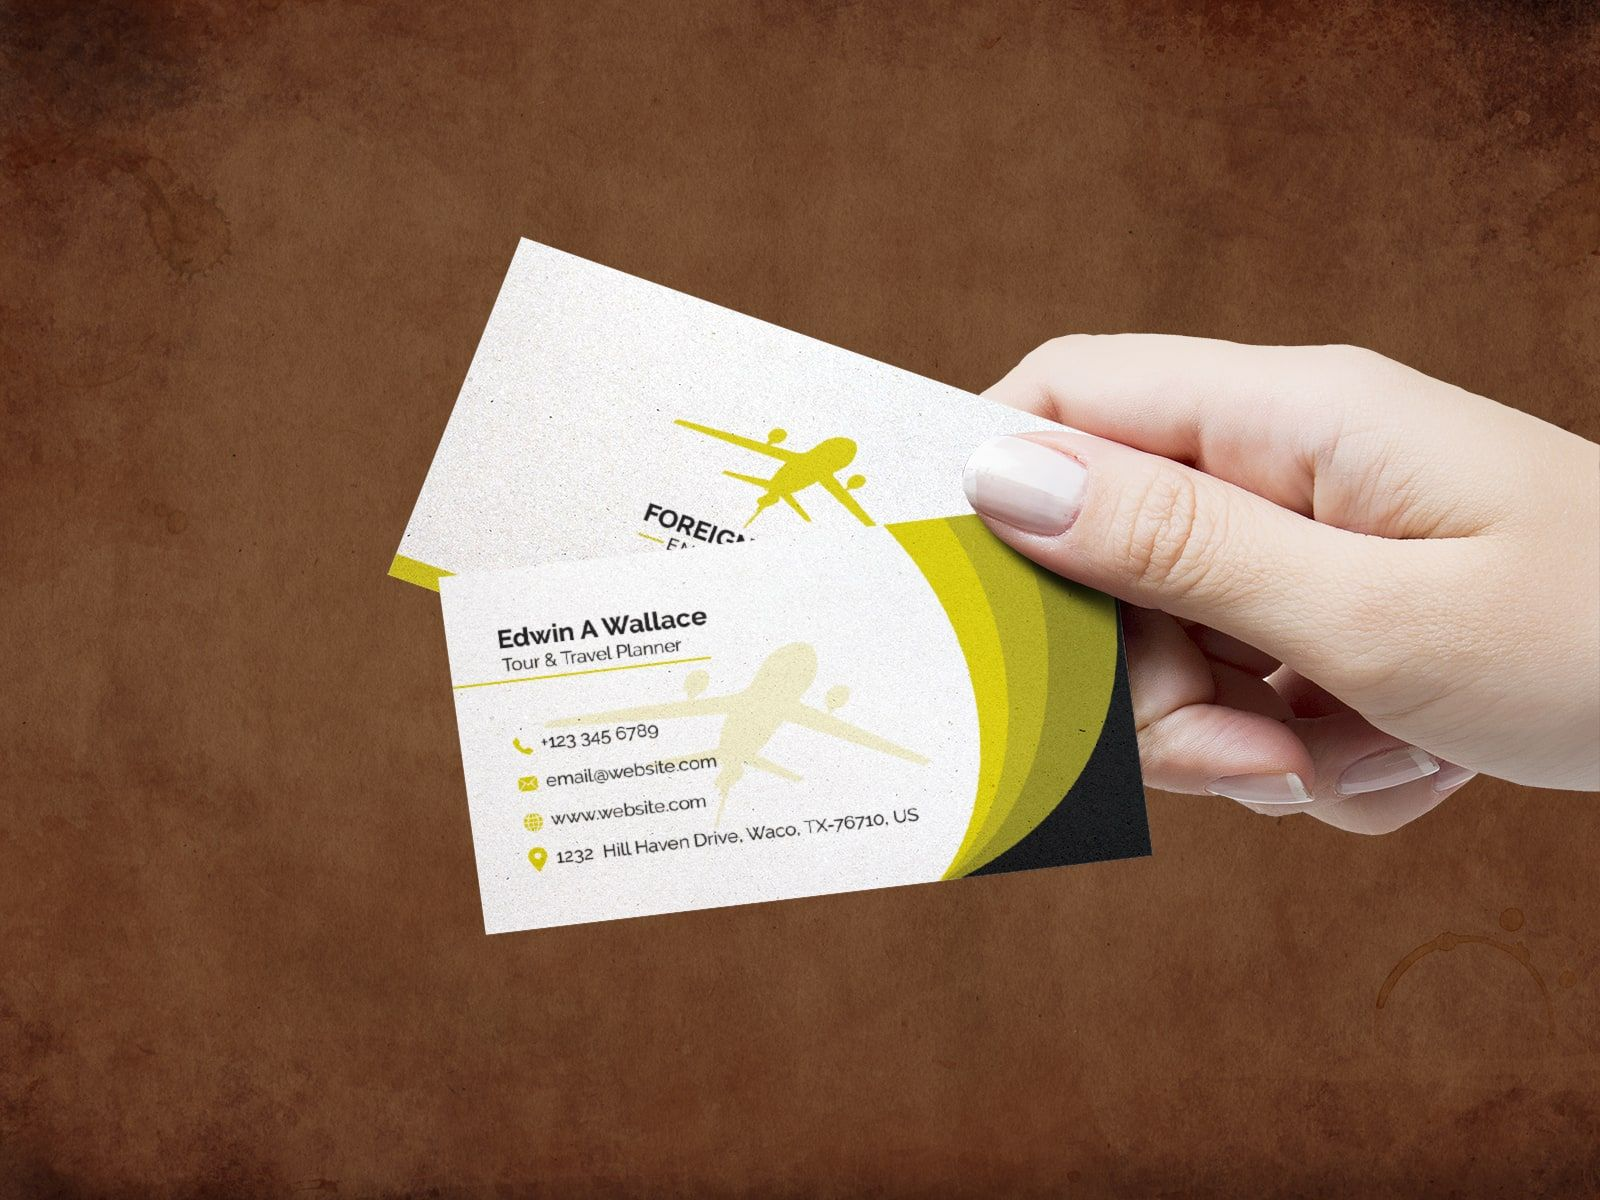 Travel Agency Business Card Design Template Business Card Template Design Agency Business Cards Business Cards Creative Templates